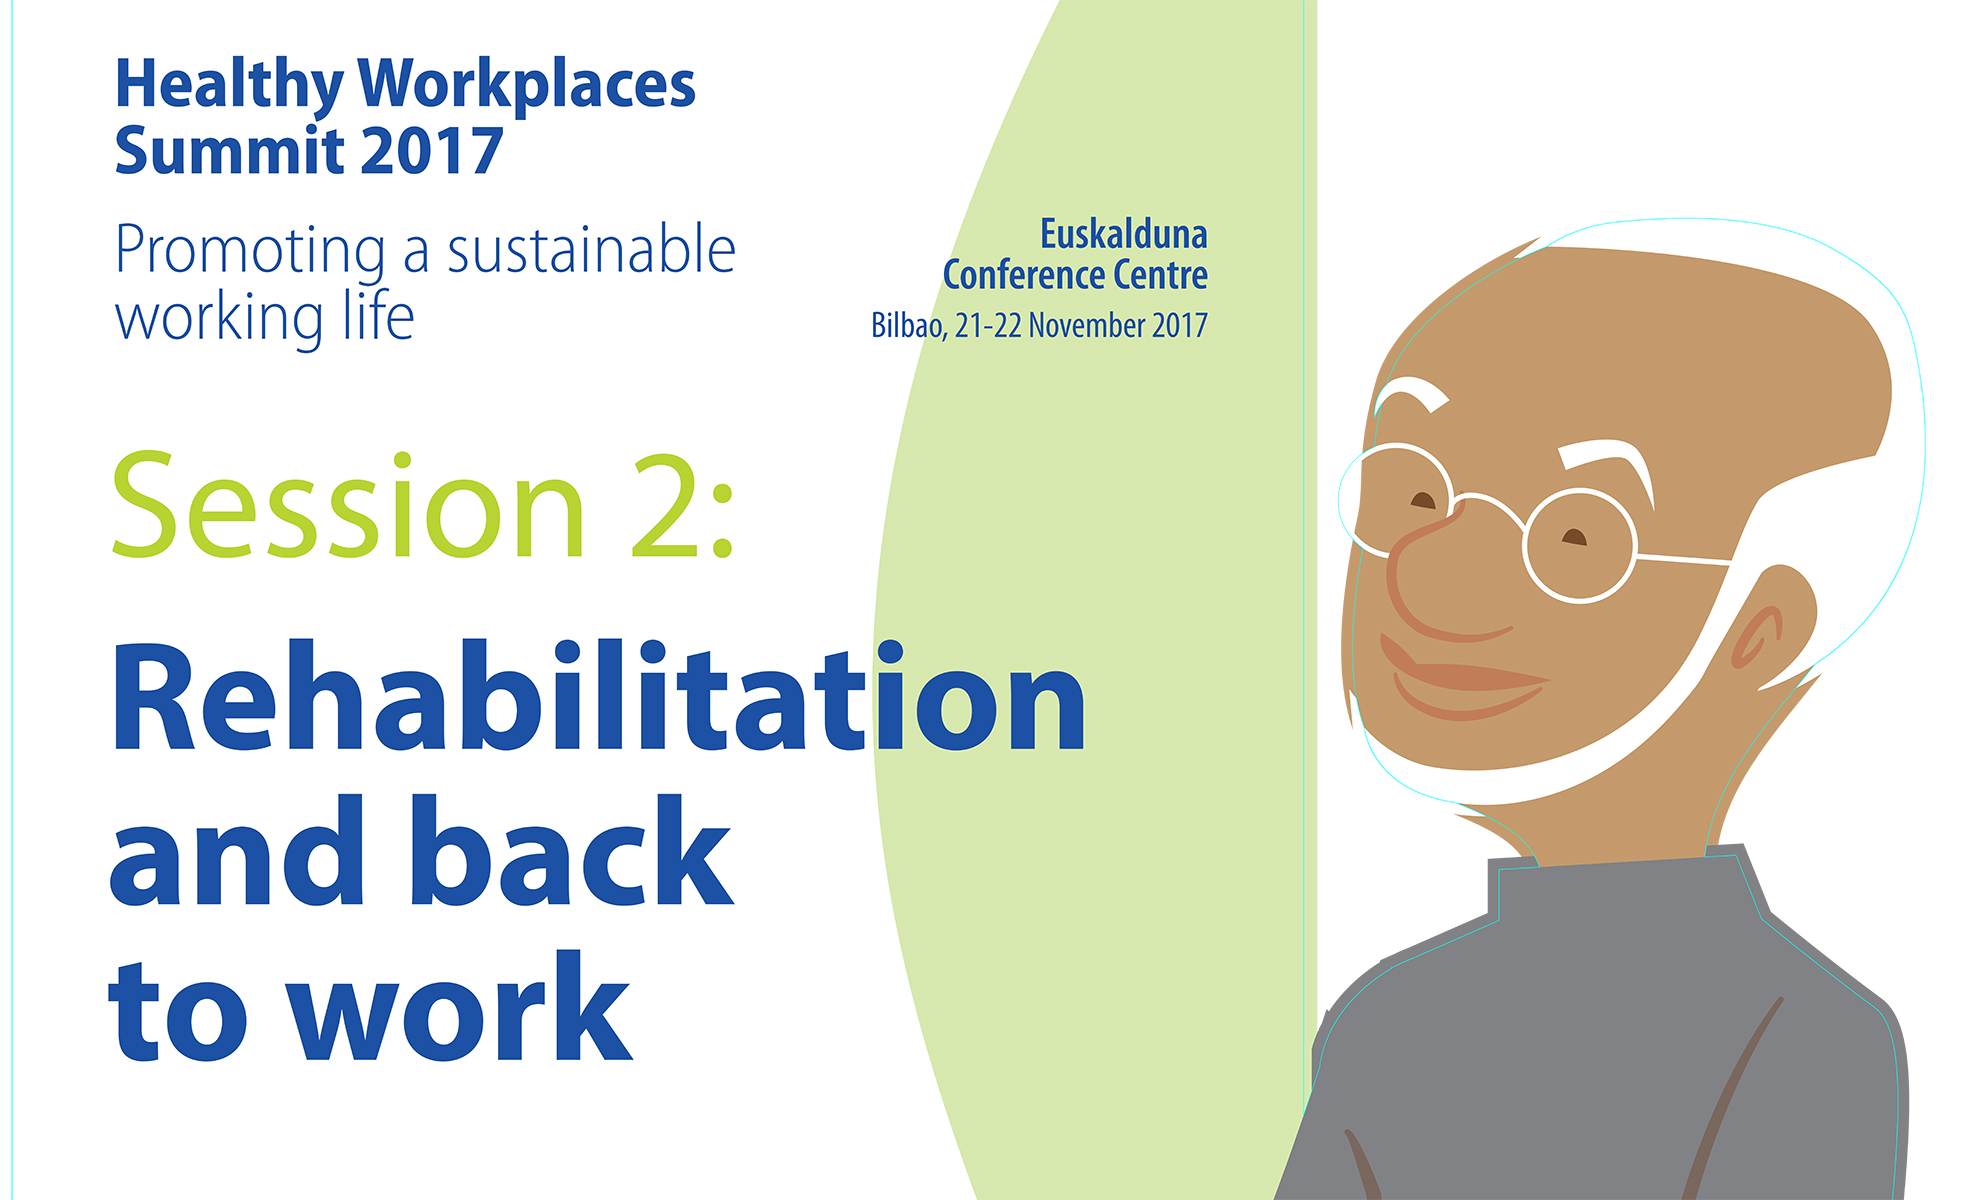 Parallel session 2 - Rehabilitation and back to work